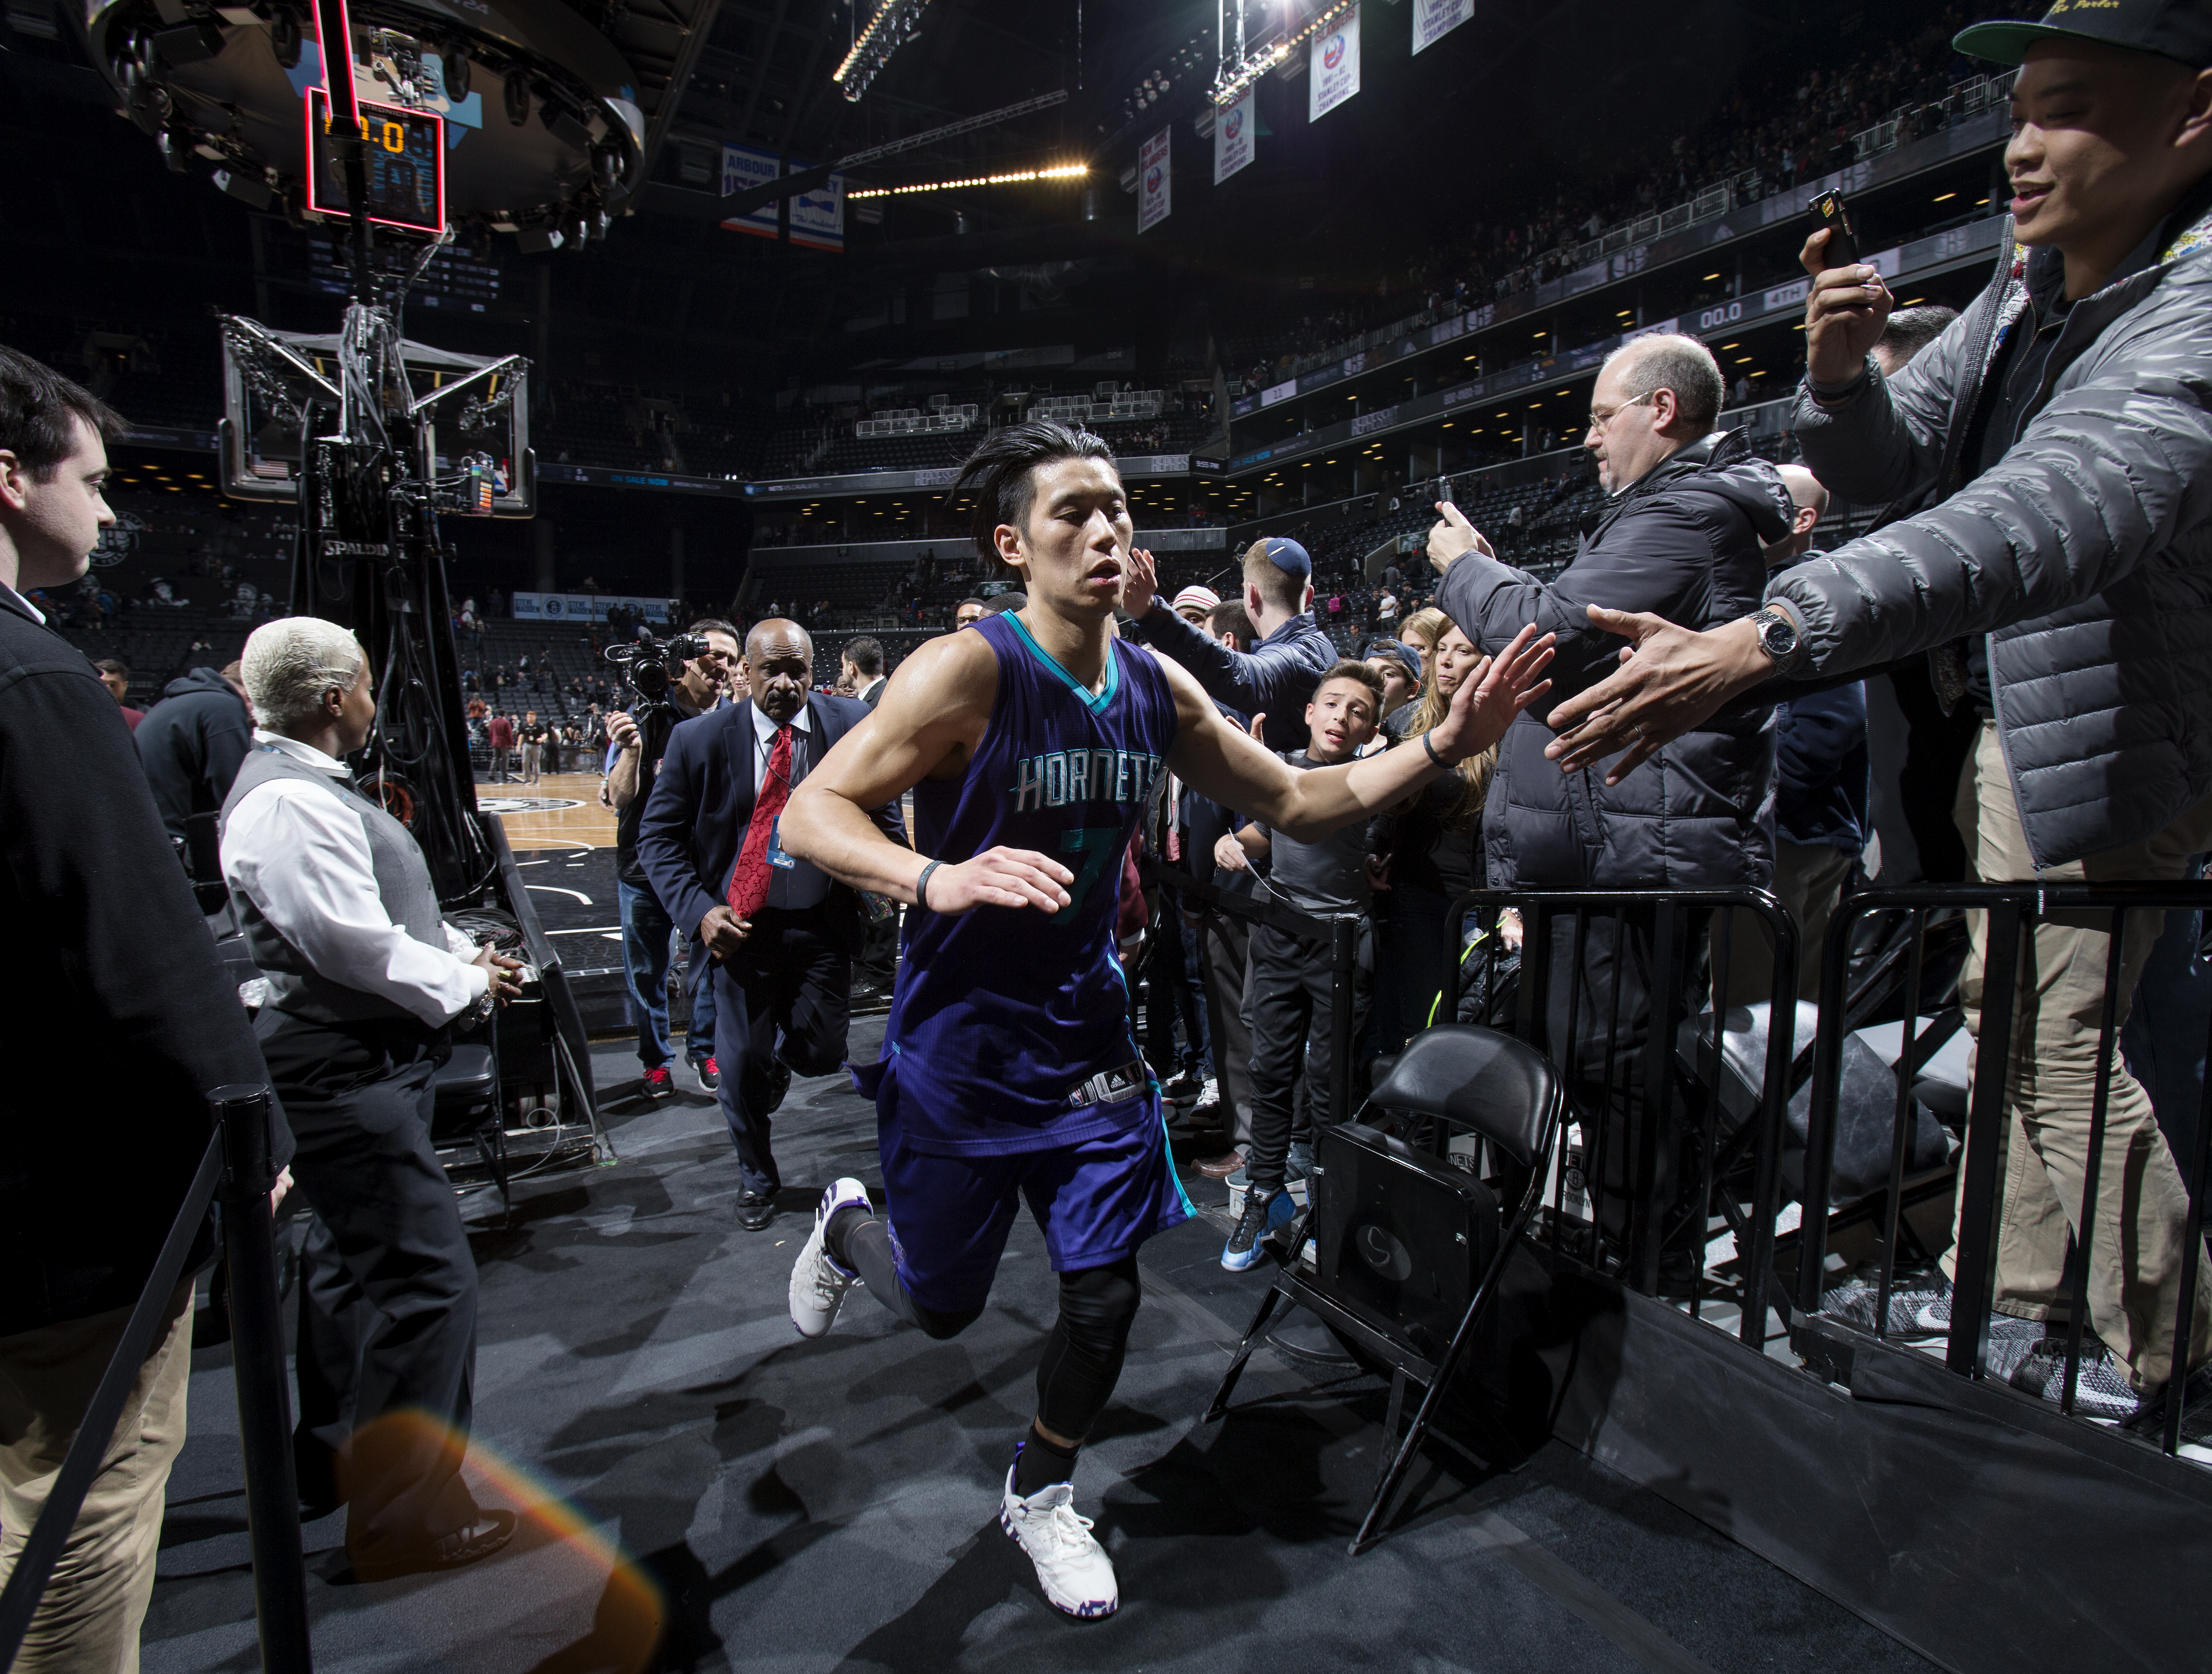 BROOKLYN, NY  - MARCH 22: Jeremy Lin #7 of the Charlotte Hornets high fives fans after the game against the Brooklyn Nets on March 22, 2016 at Barclays Center in Brooklyn, New York. (Photo by Nathaniel S. Butler/NBAE via Getty Images)